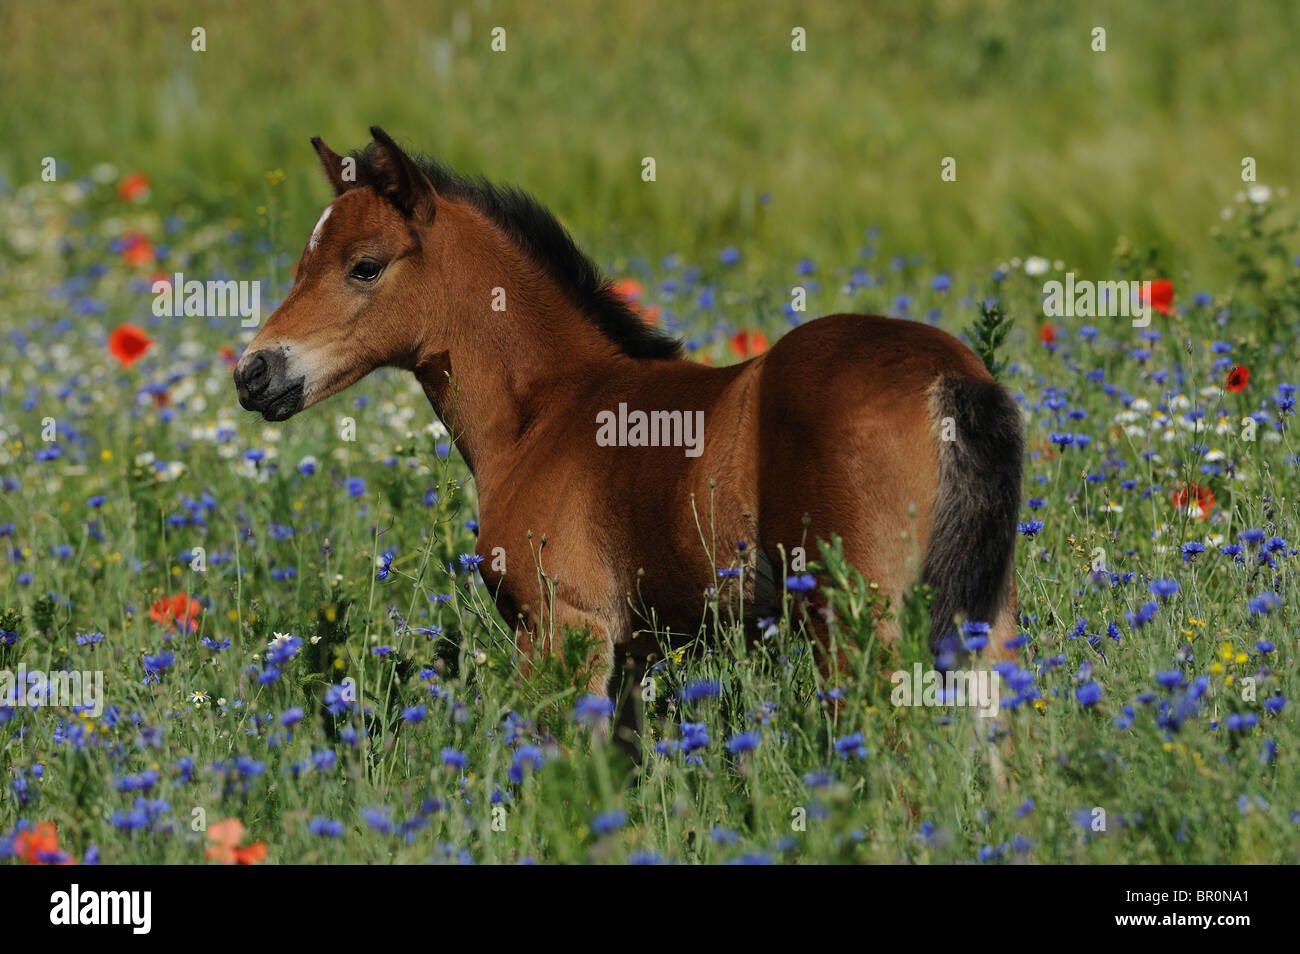 German Riding Pony (Equus ferus caballus). Foal standing in a flowering meadow. Stock Photo